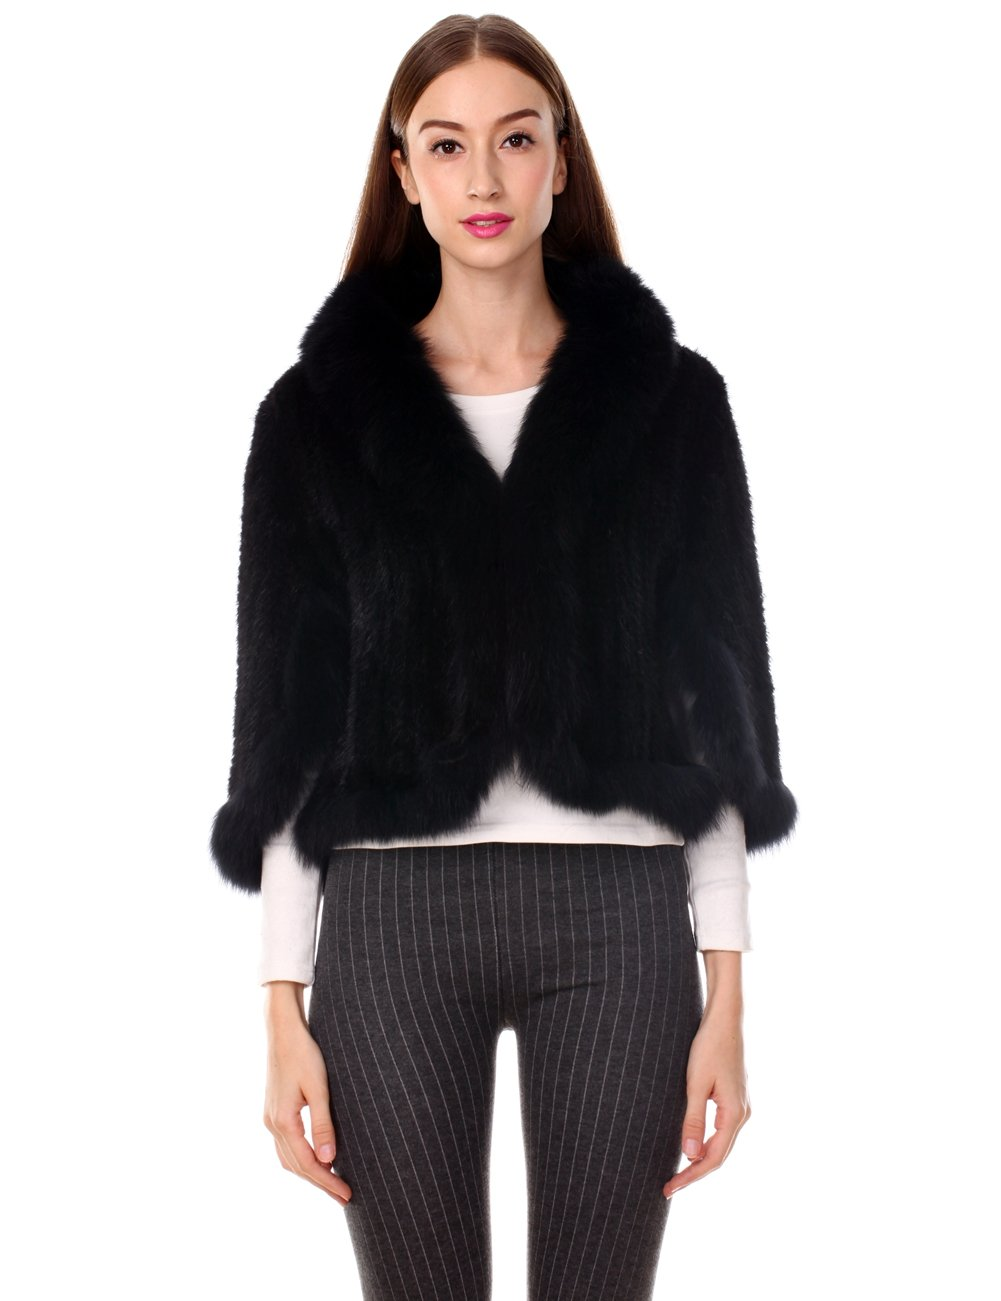 Ferand Real Knitted Mink Fur Stole with Fox Fur Collar, One Size Fits All for Women, Black